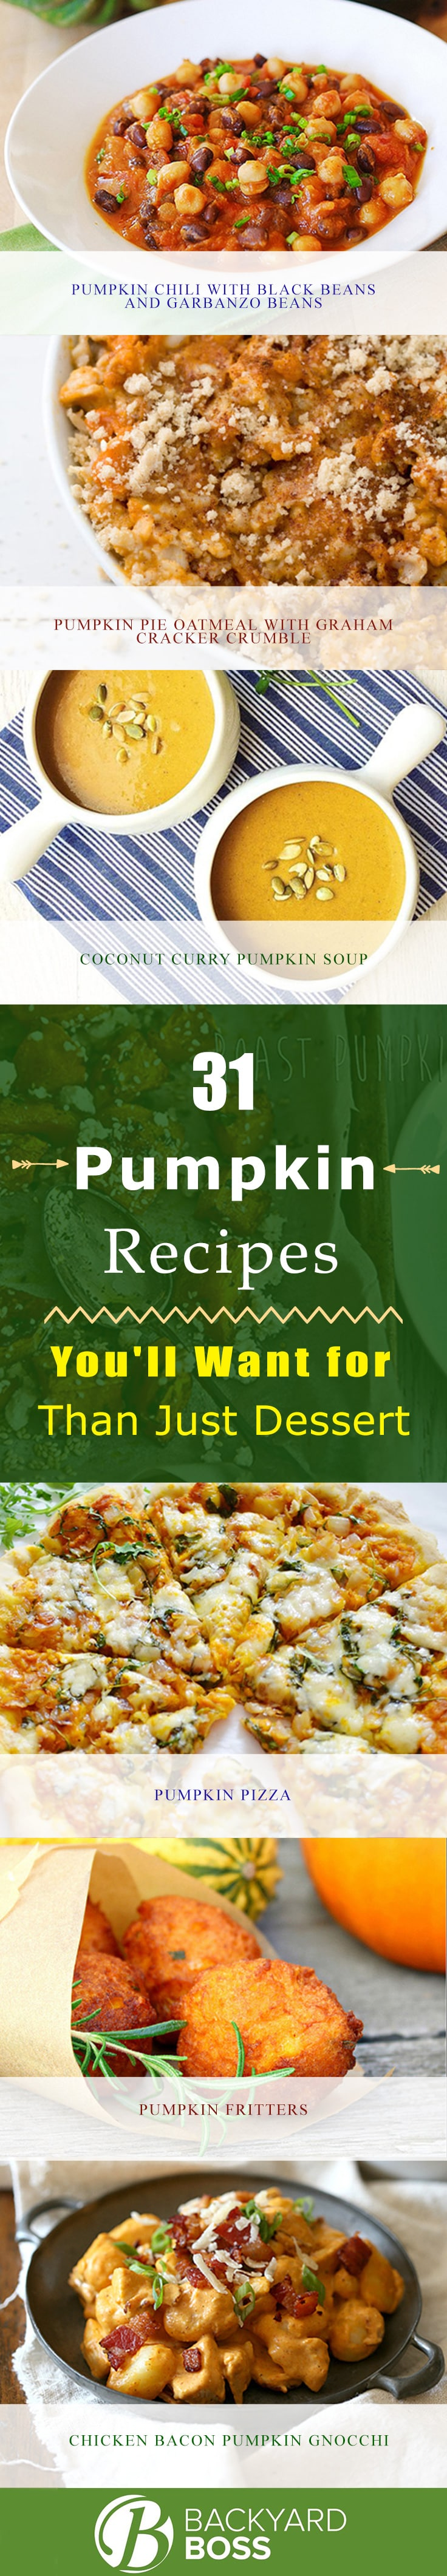 31-Pumpkin-Recipes-2